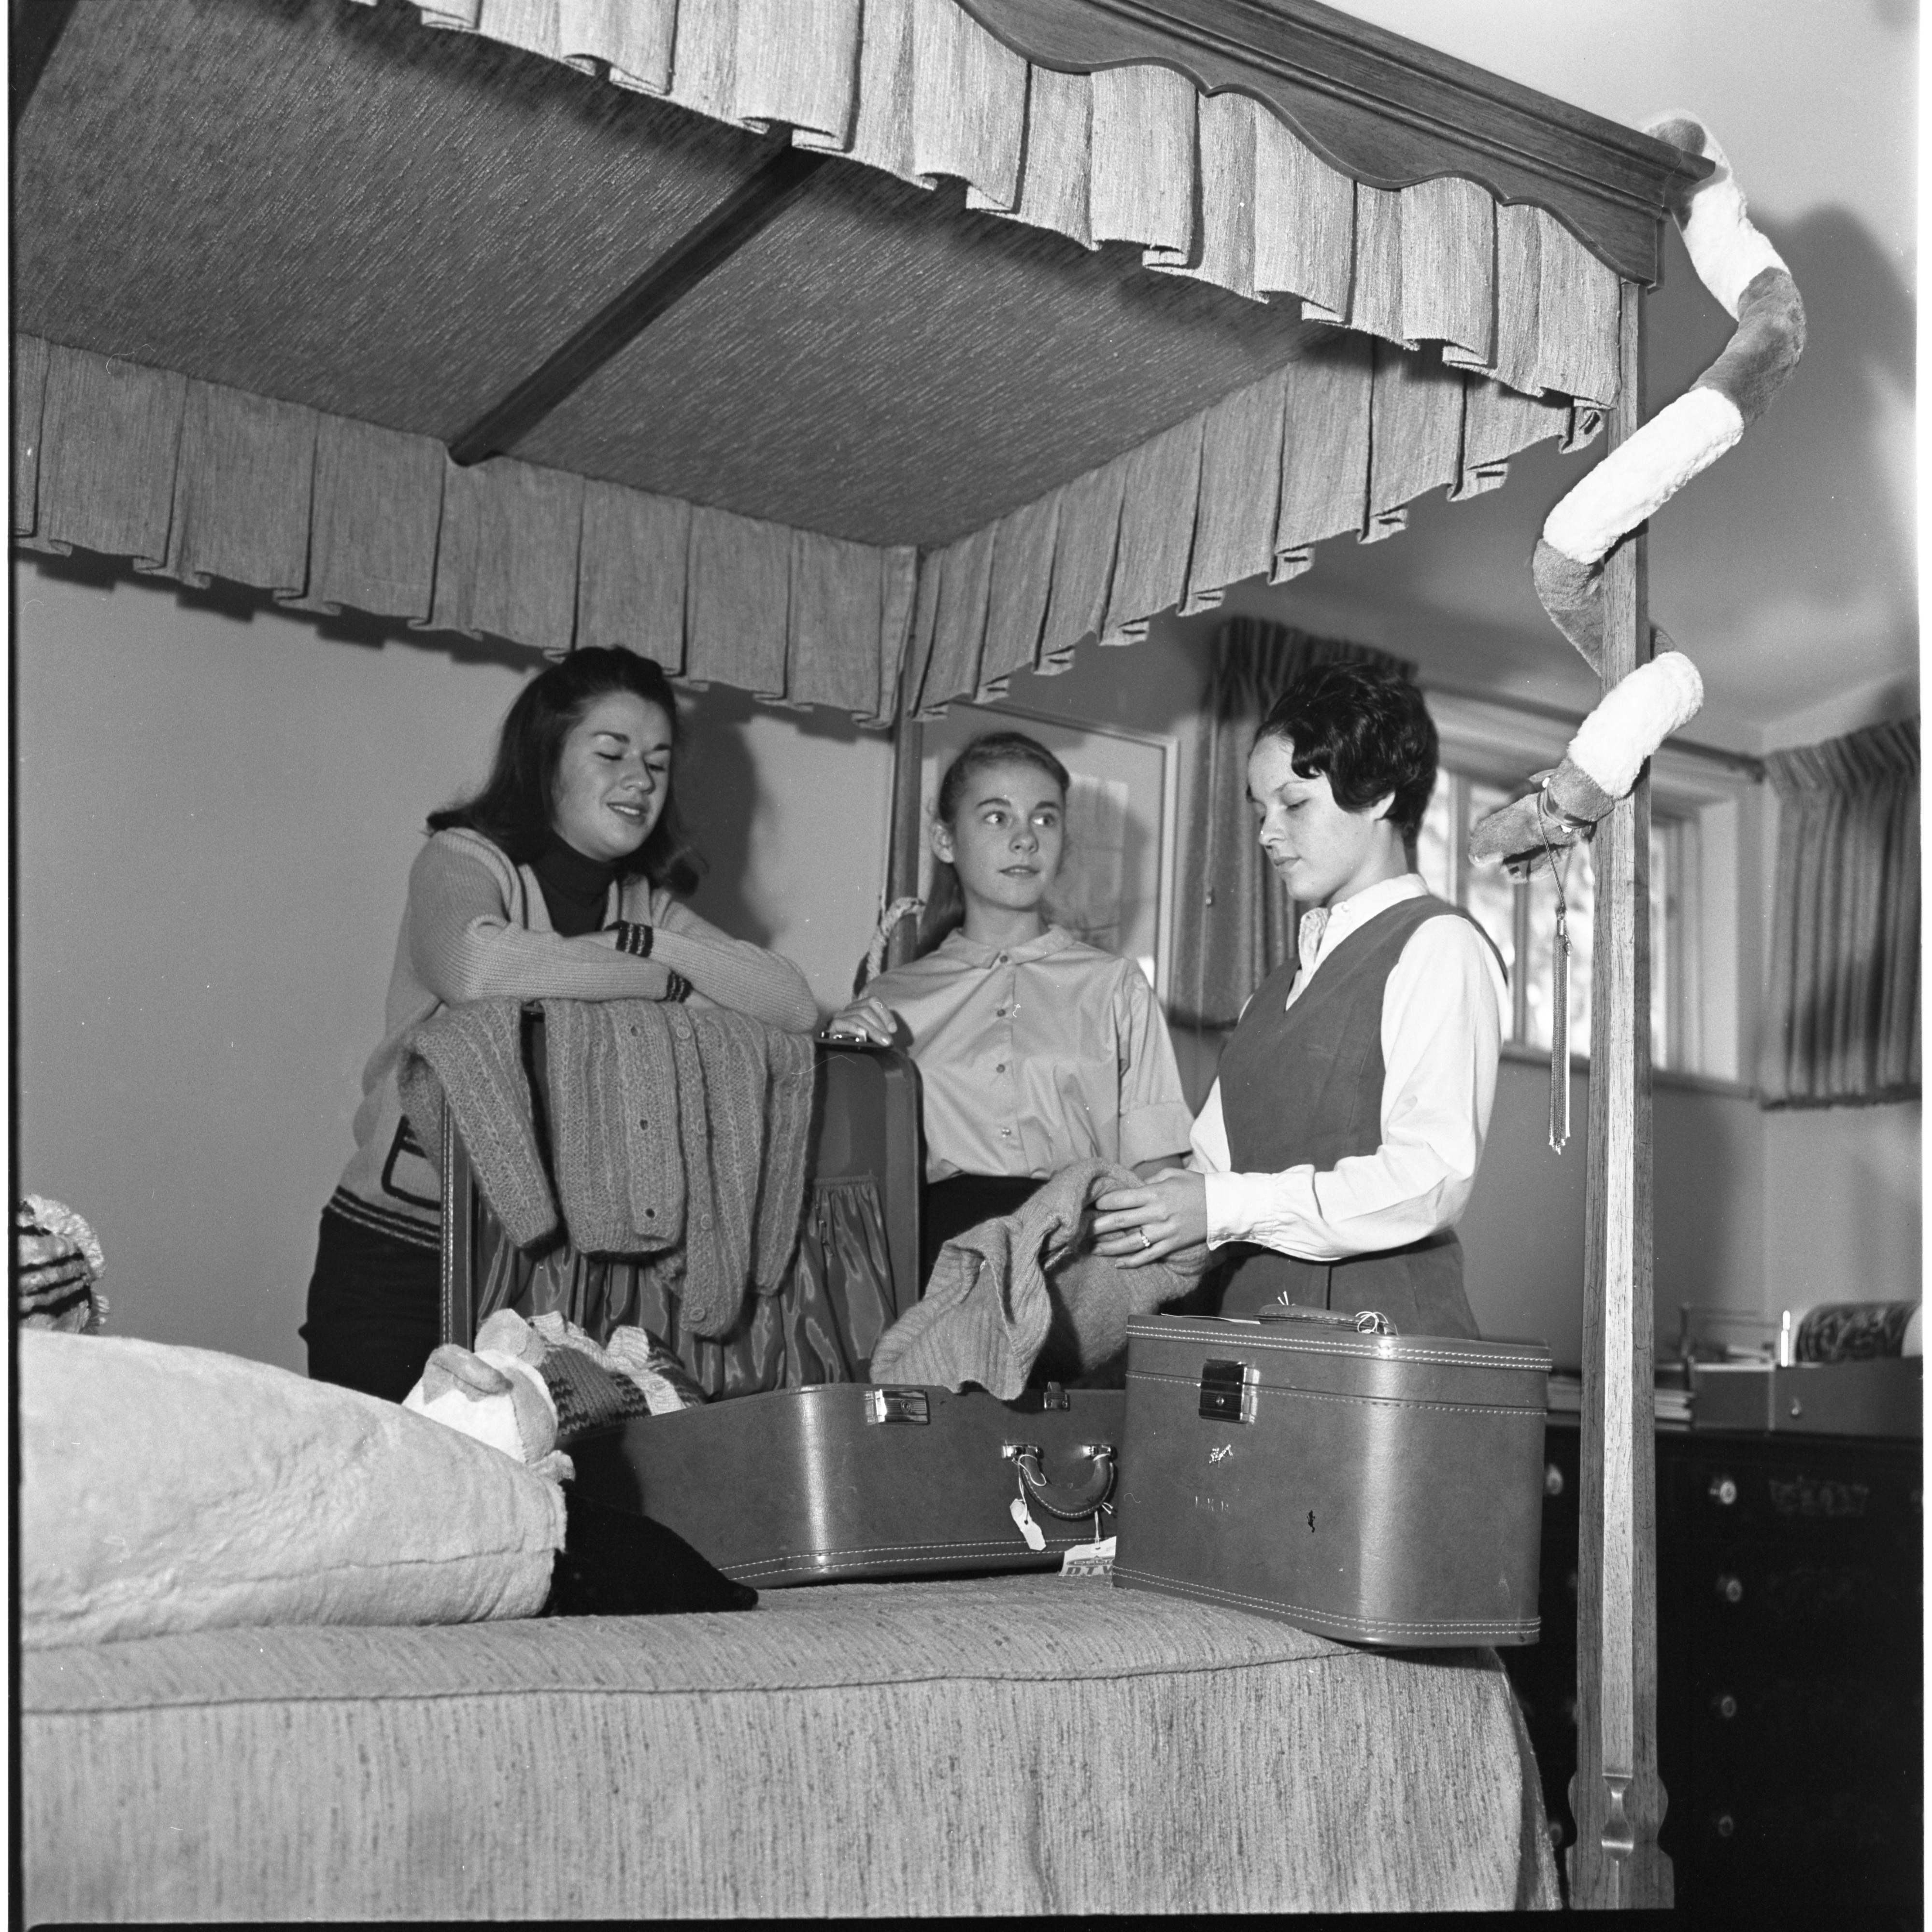 Laura Evans & Betsy Wernette Get Advice On Packing For College From Pamela Reading, August 1964 image